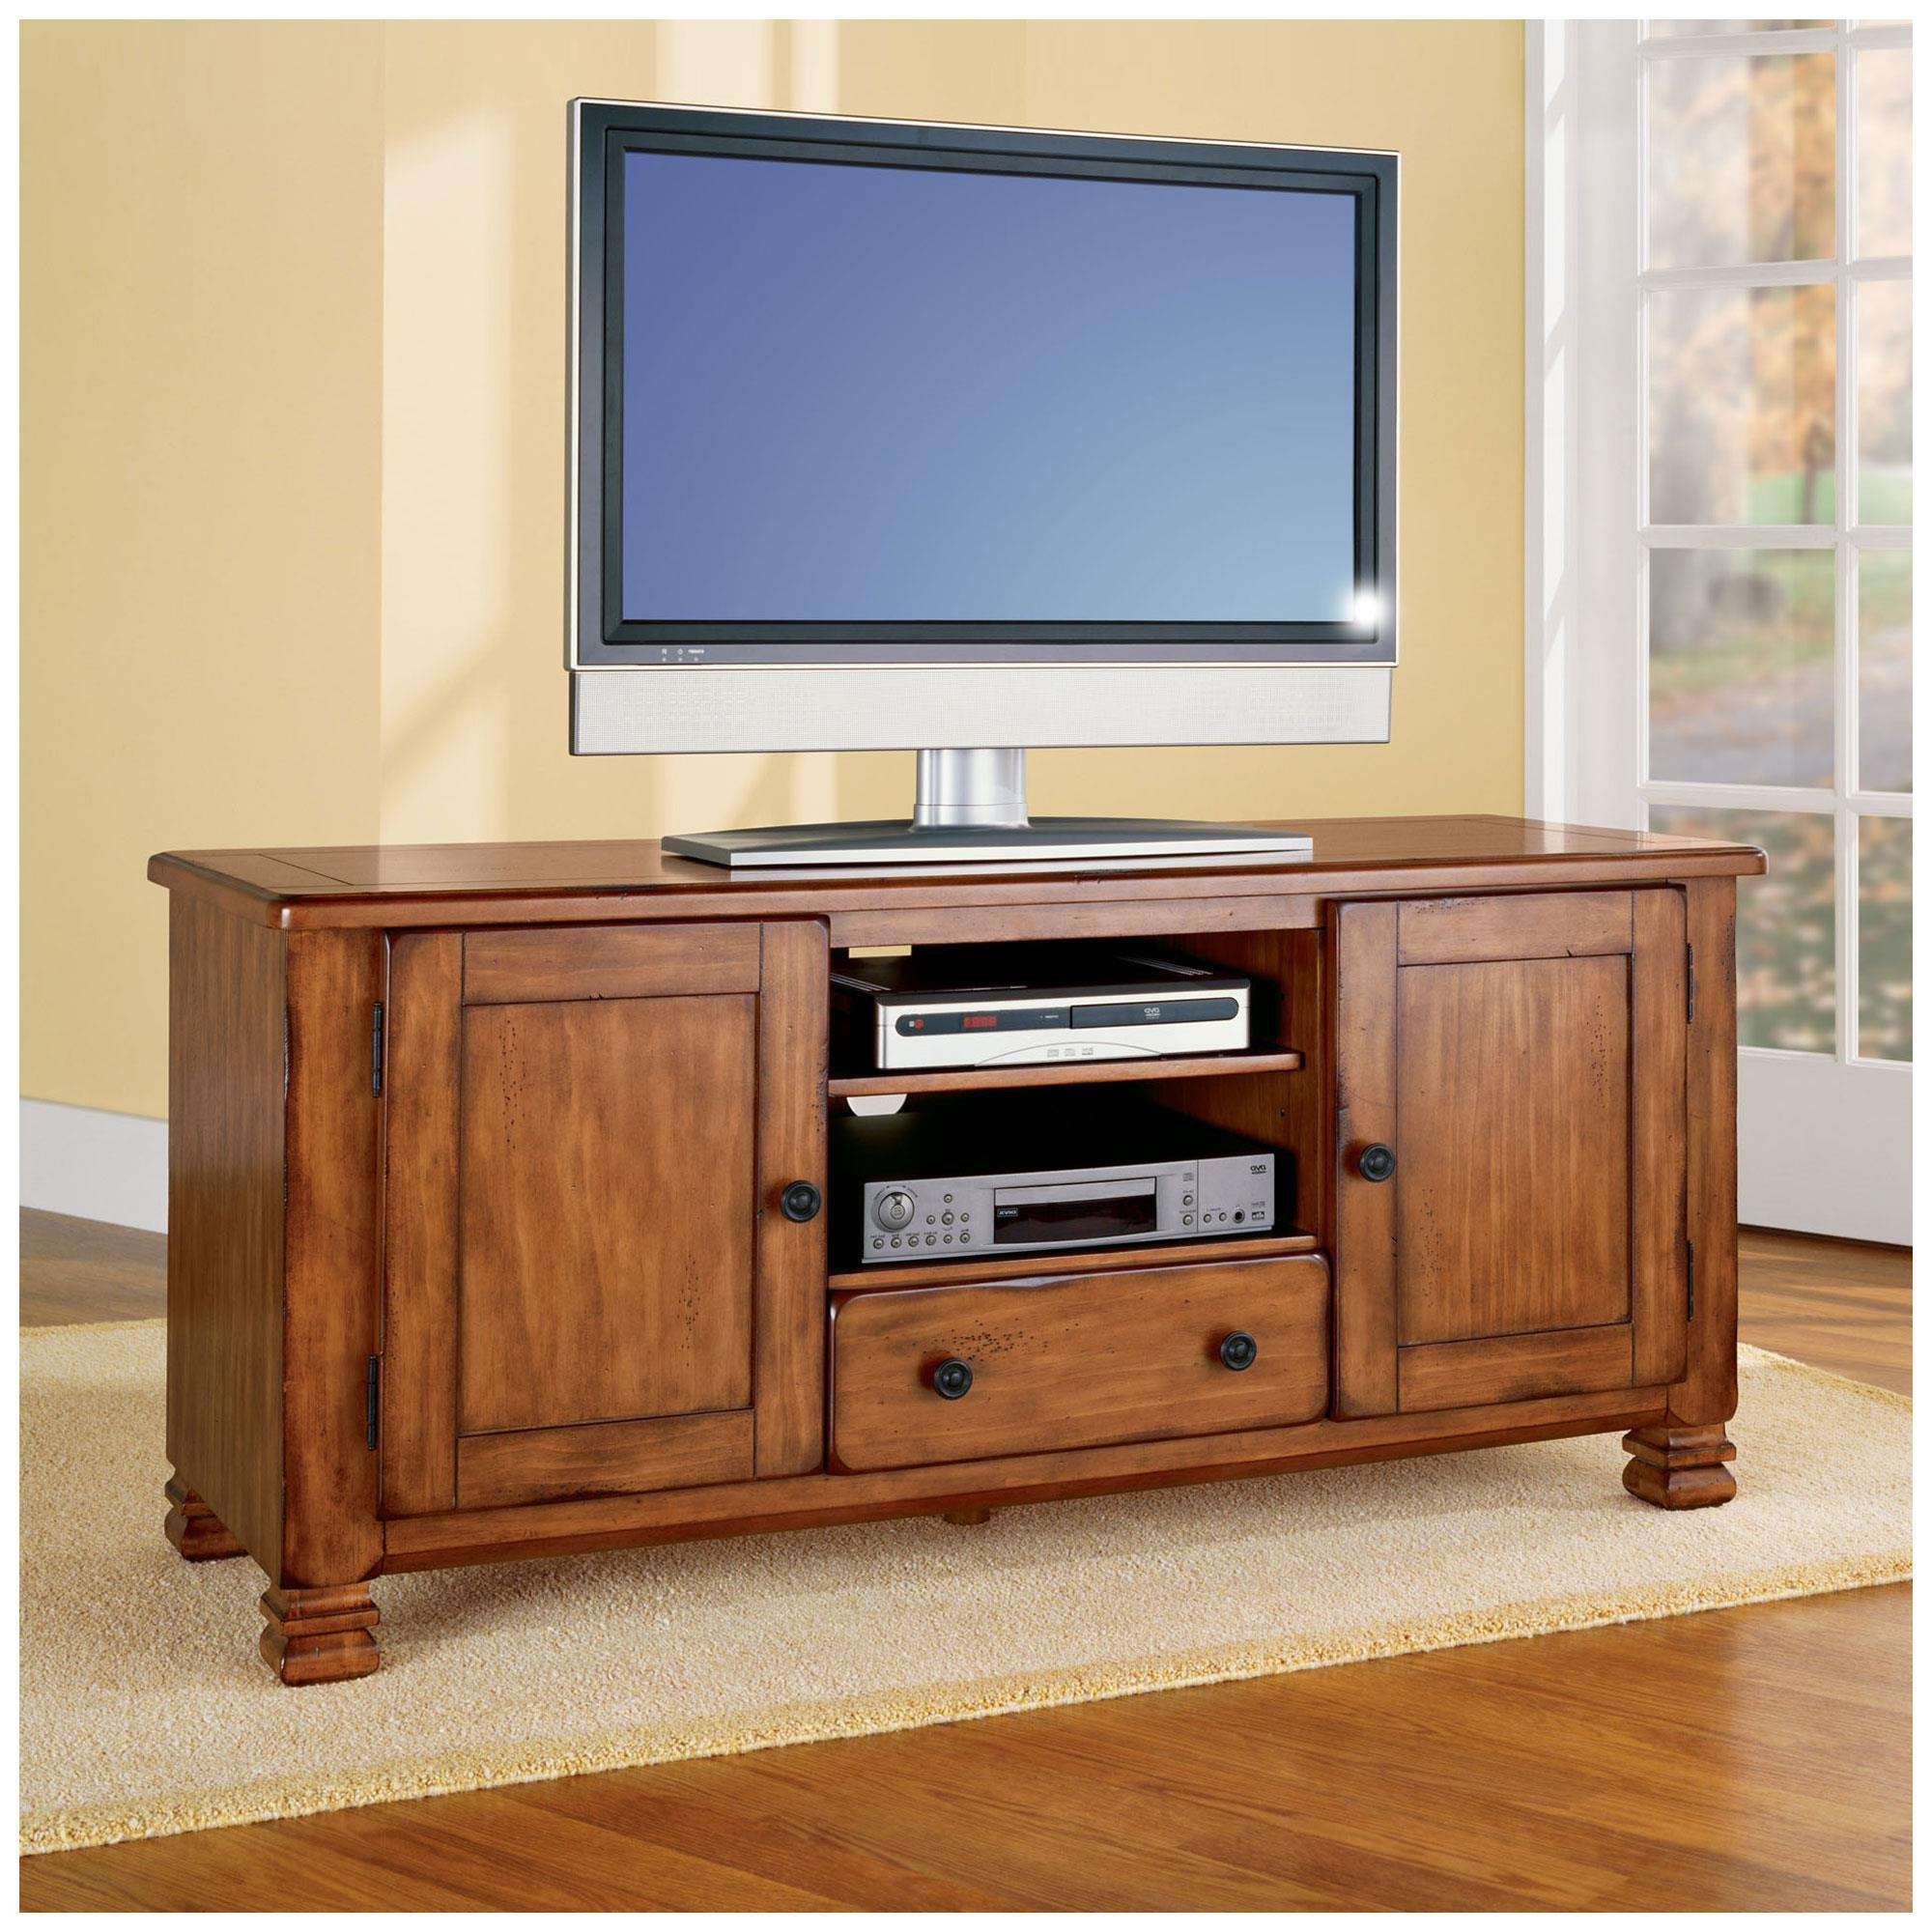 79 Literarywondrous Light Wood Tv Stand Photo Design Home Stands Throughout Wooden Tv Stands And Cabinets (View 8 of 15)